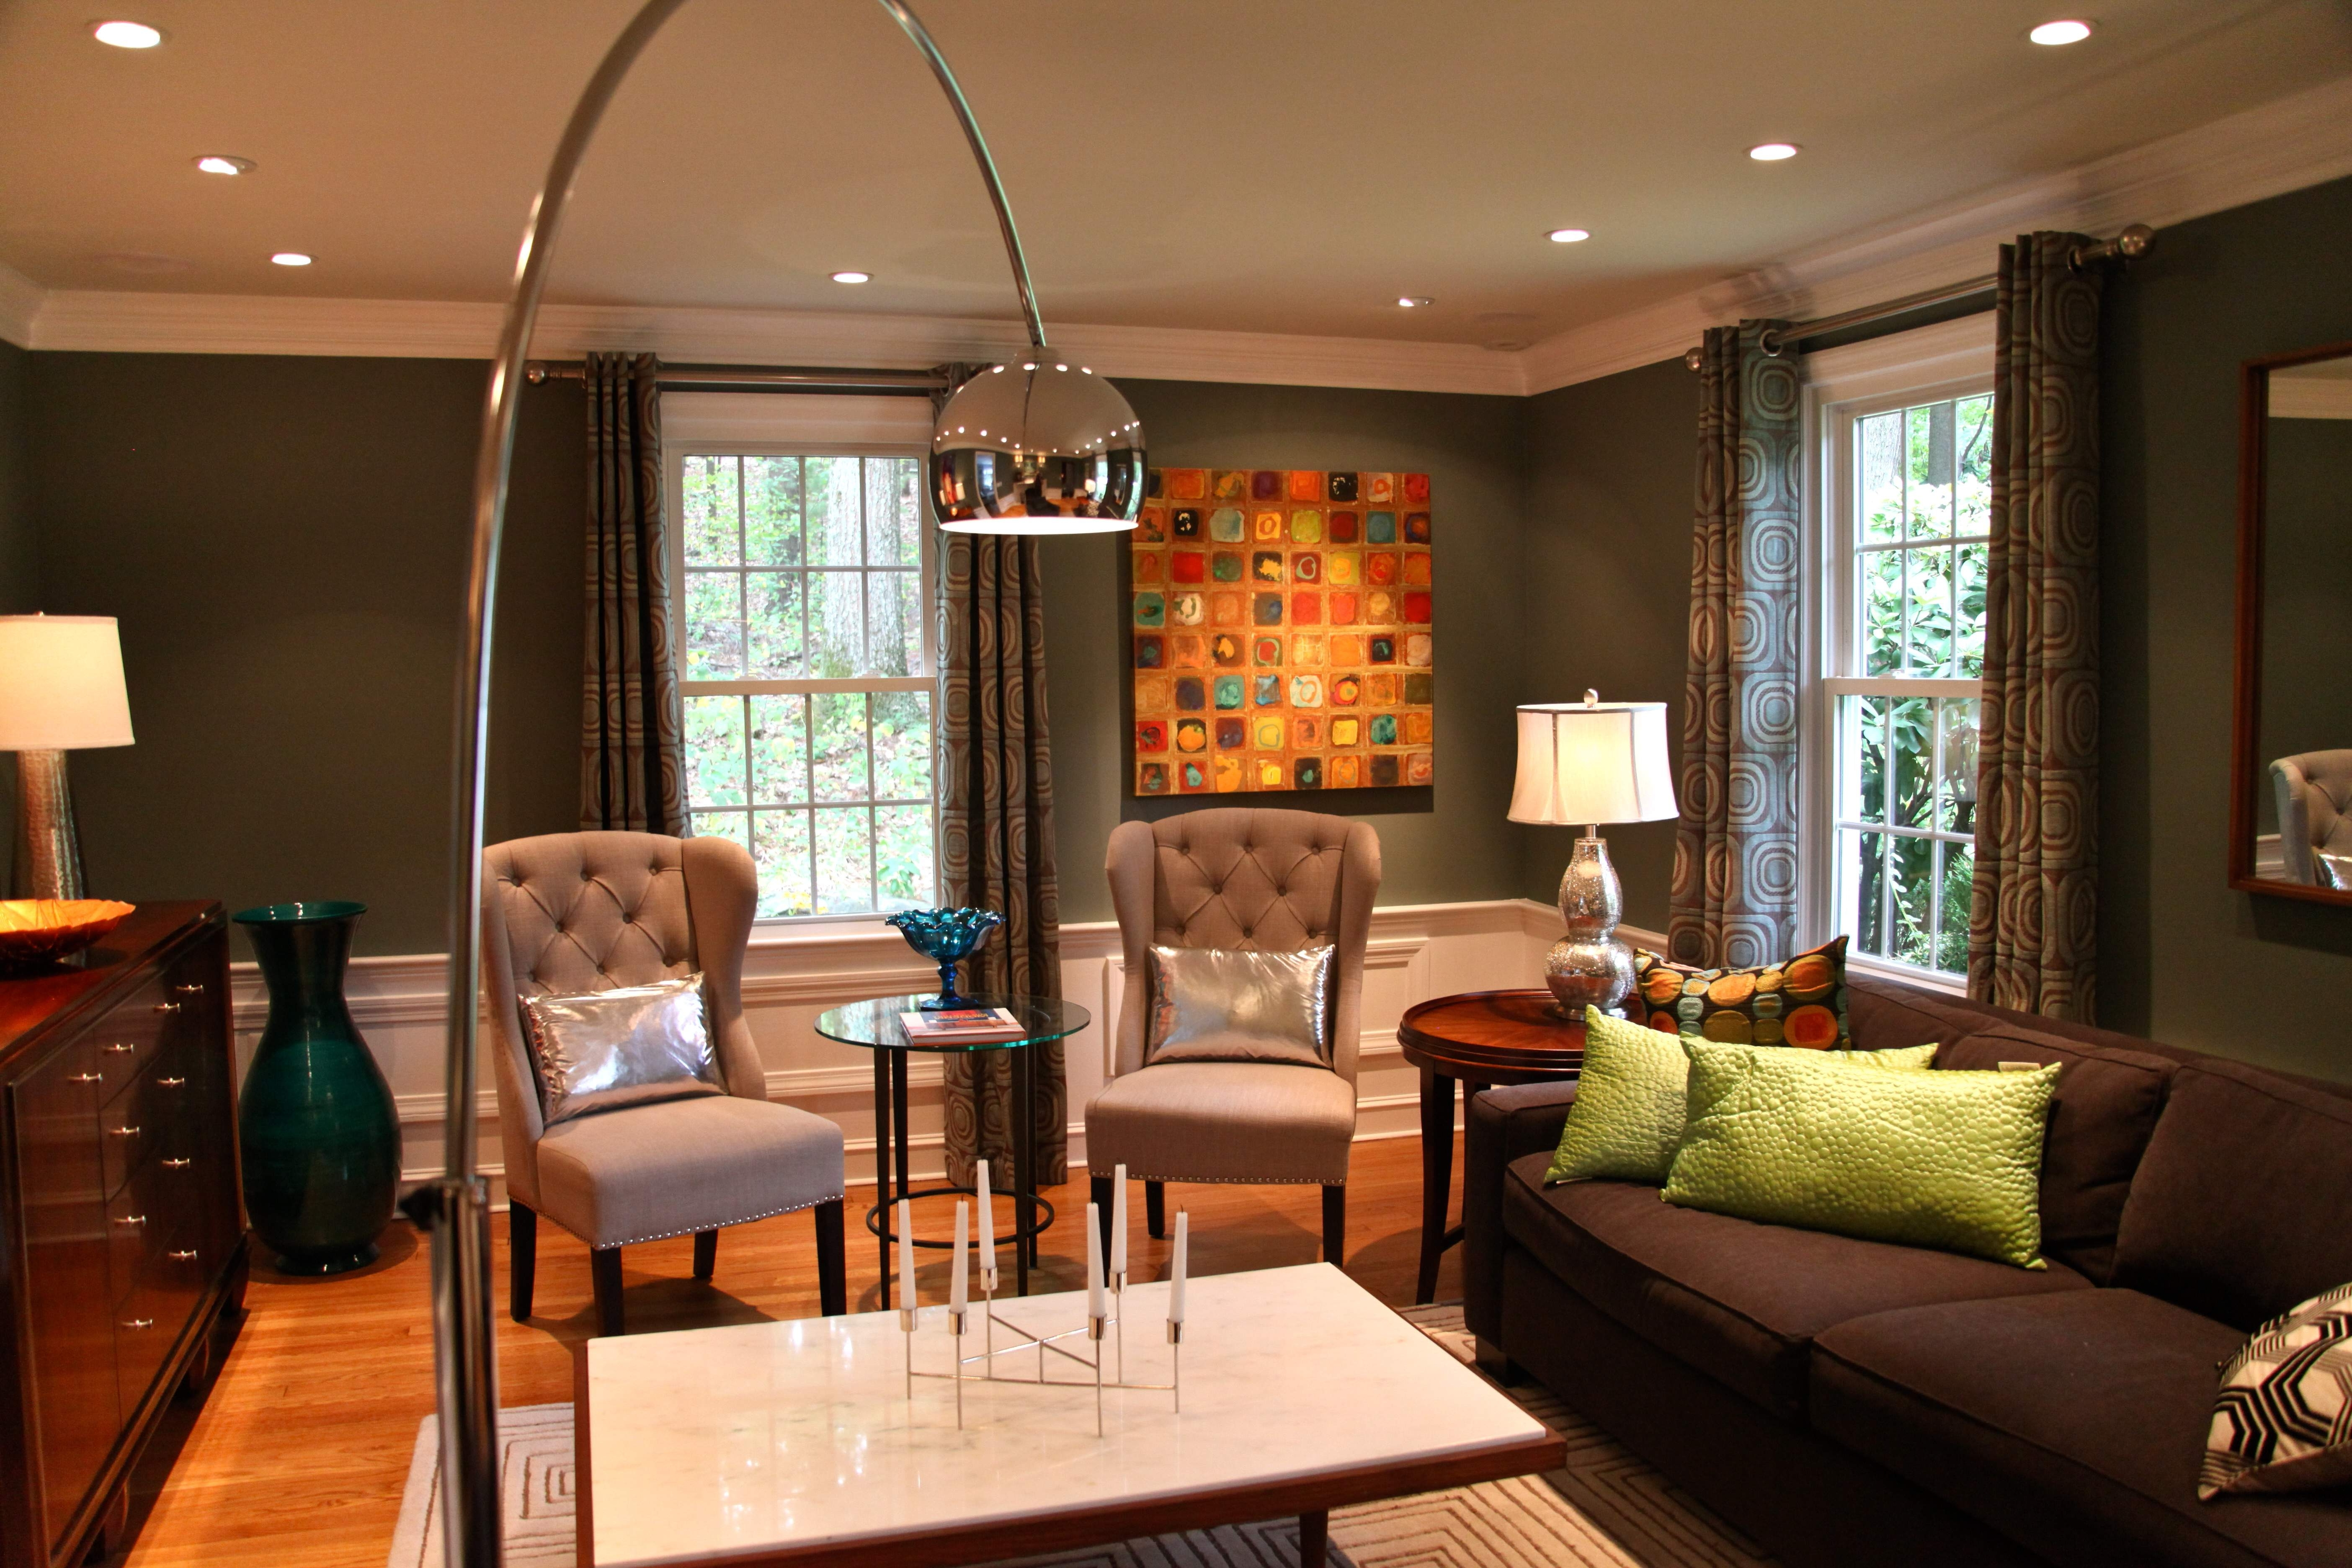 Most Current Houzz Living Room Table Lamps With Livingroom : Some Useful Lighting Ideas Living Room Interior Design (View 10 of 15)